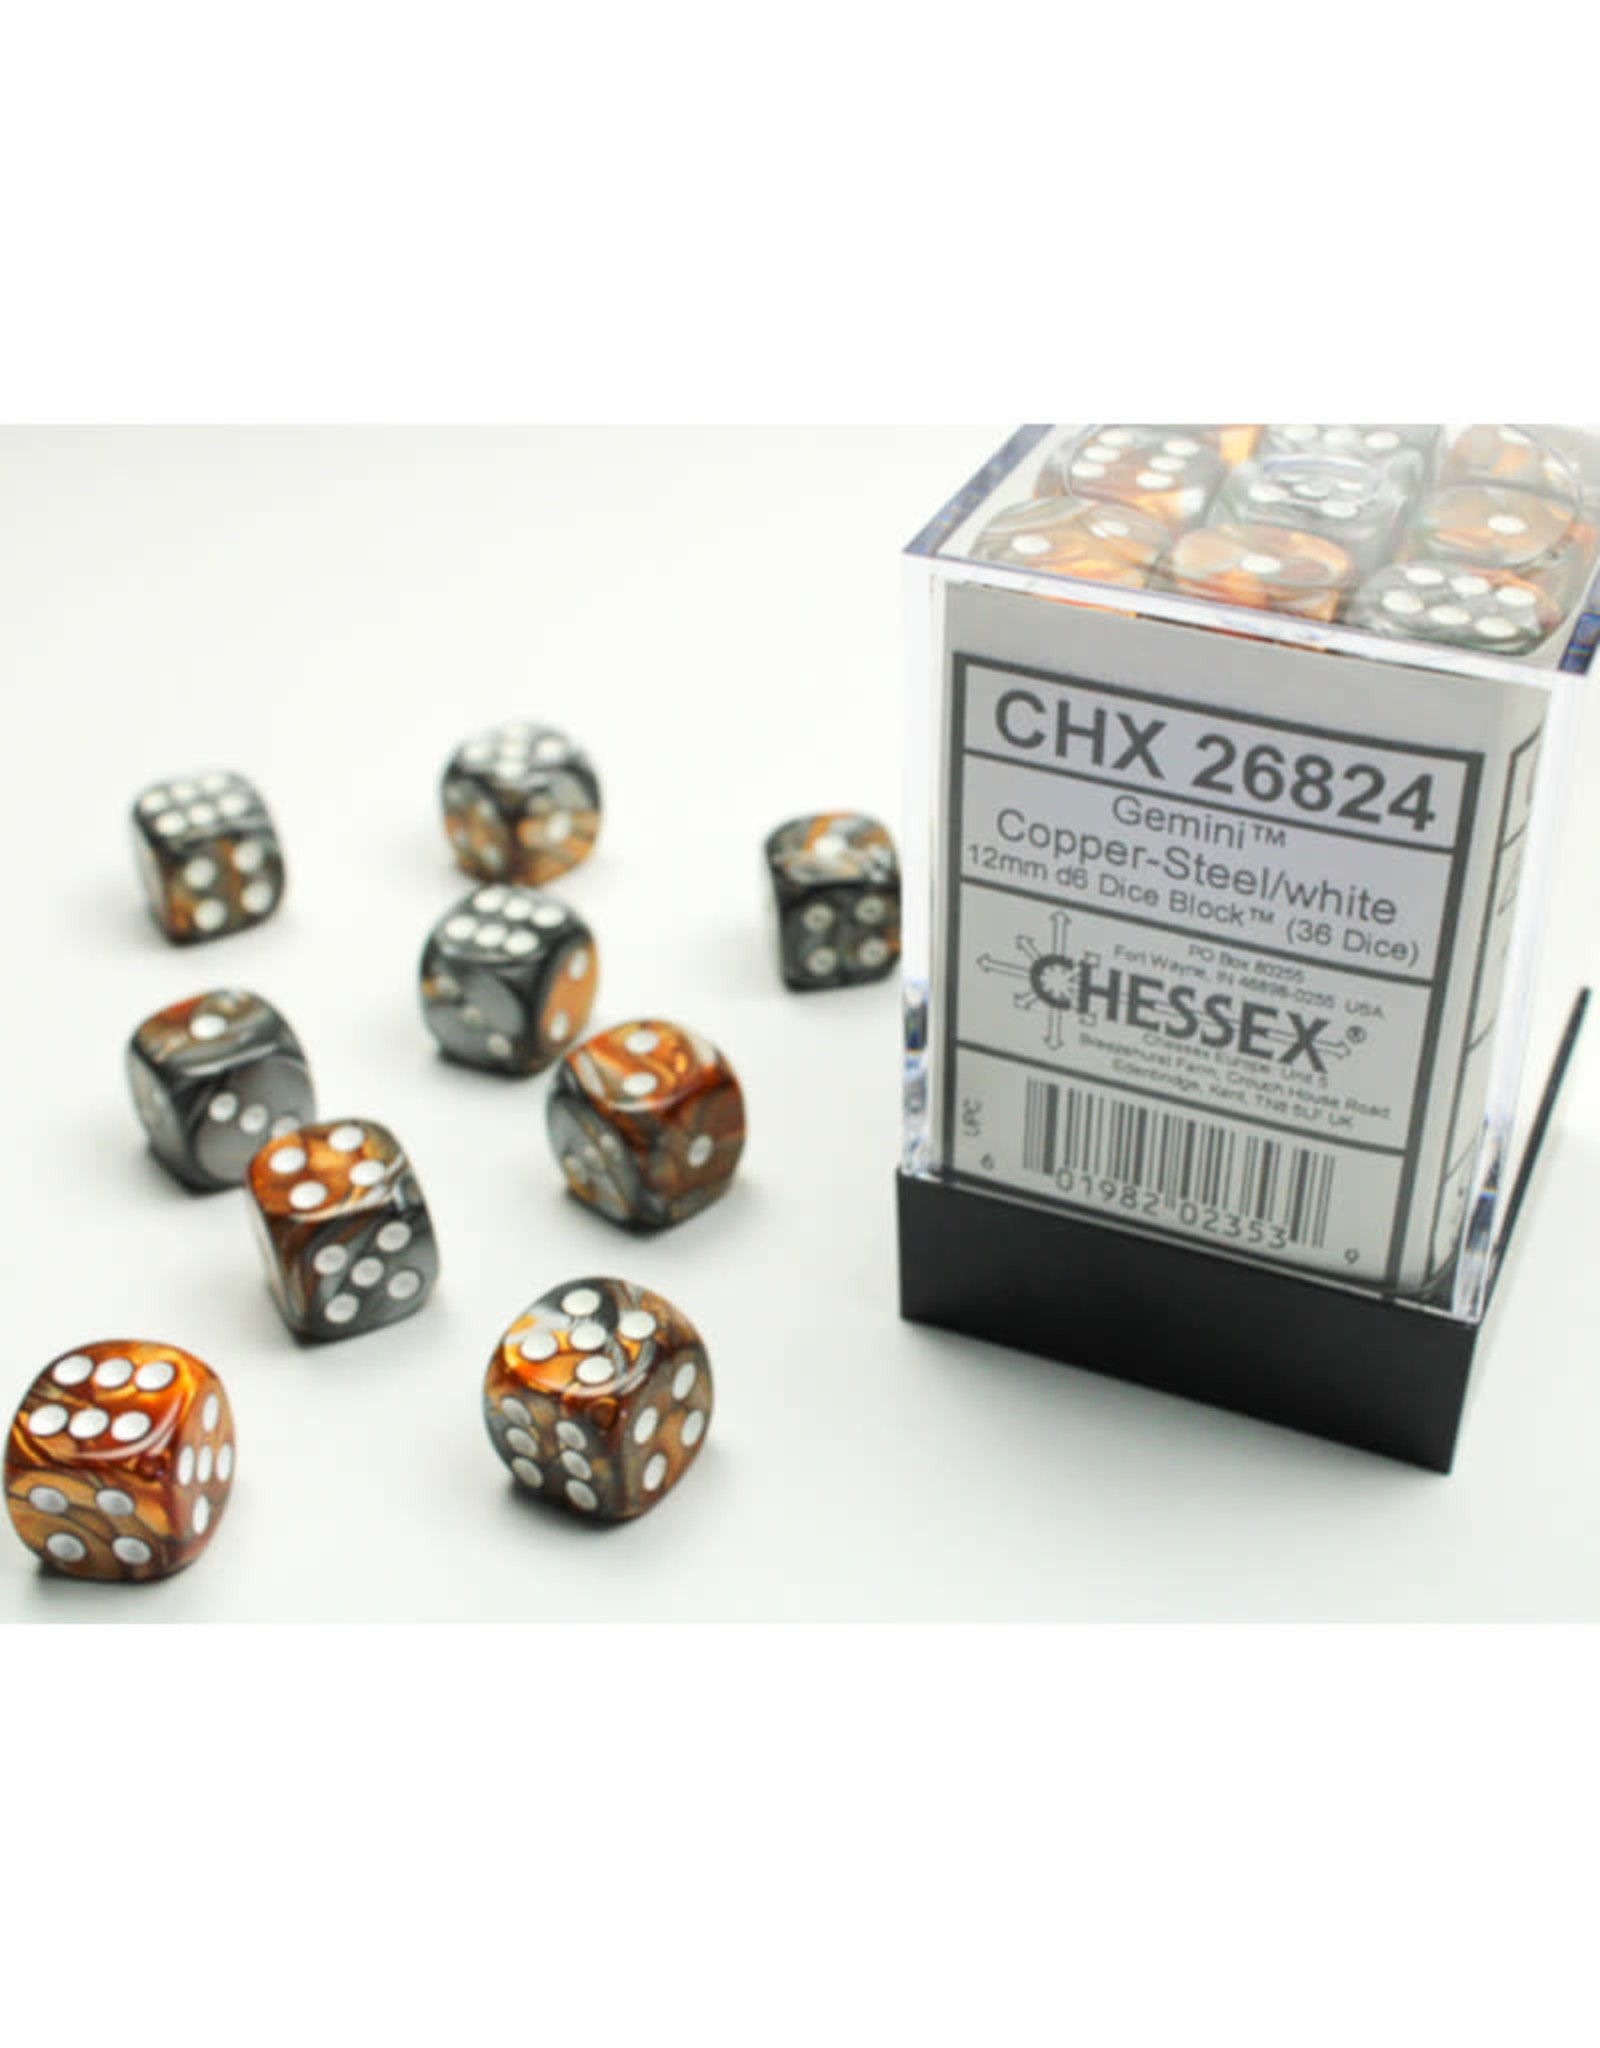 Chessex D6 Dice: 12mm Gemini Copper Steel/White (36)